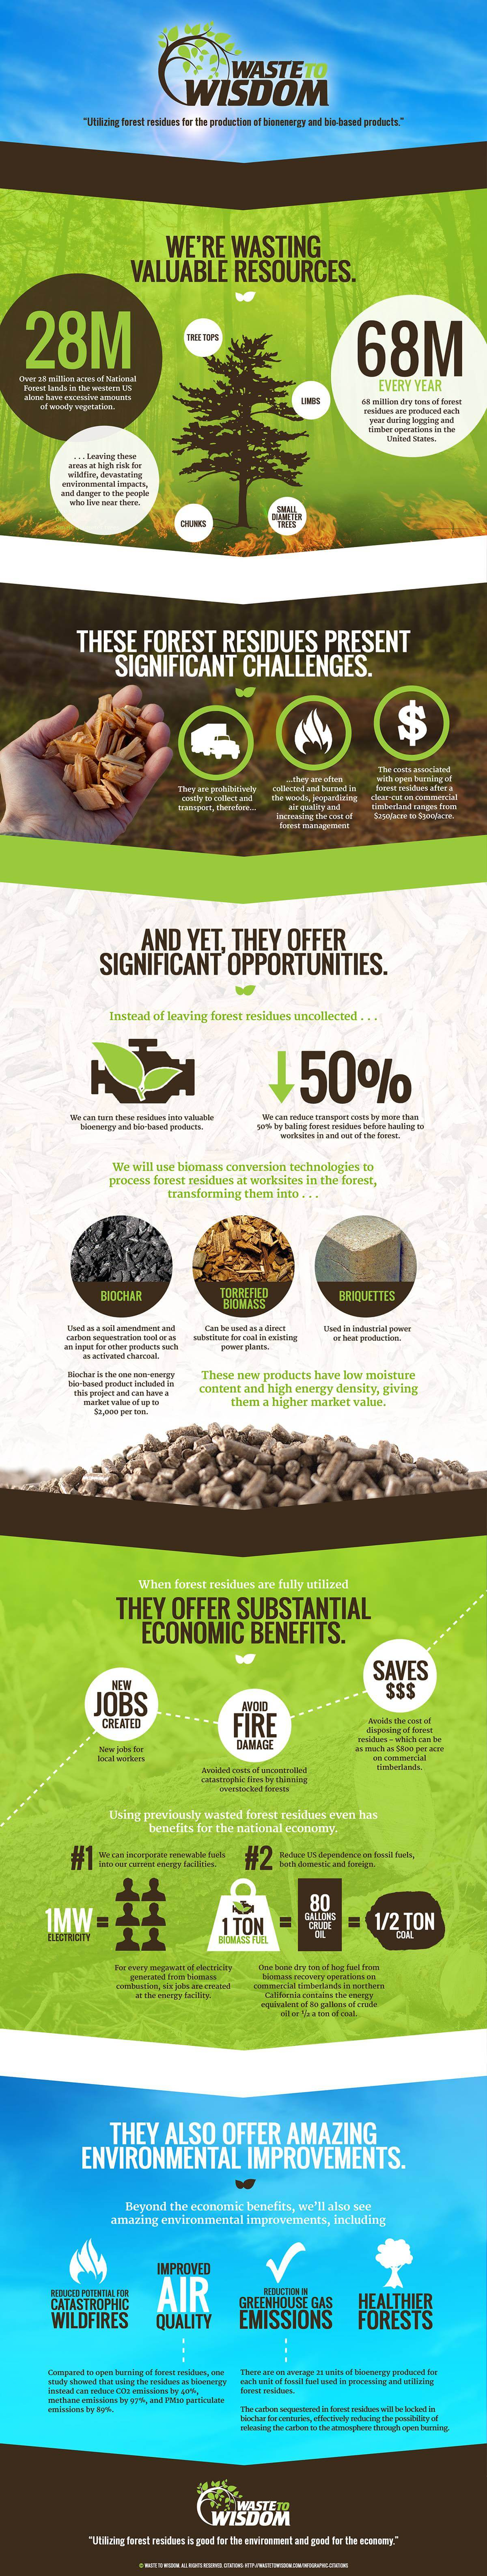 Waste to Wisdom Infographic